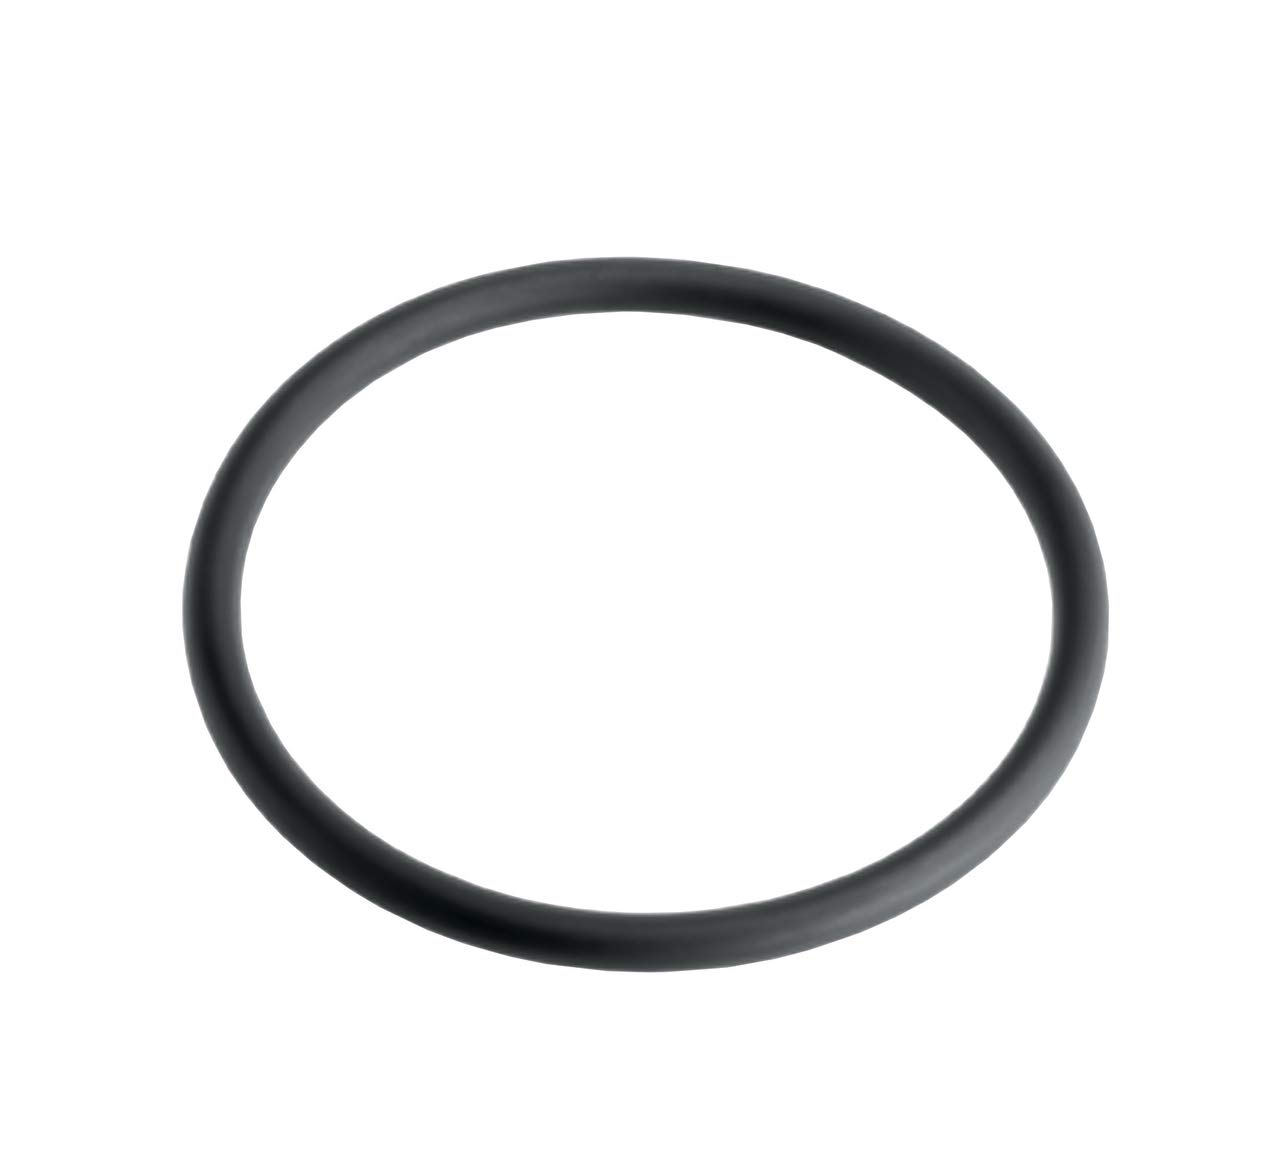 Dupont KALREZ AS-568 427/3018 Perfluoroelastomer O-Ring